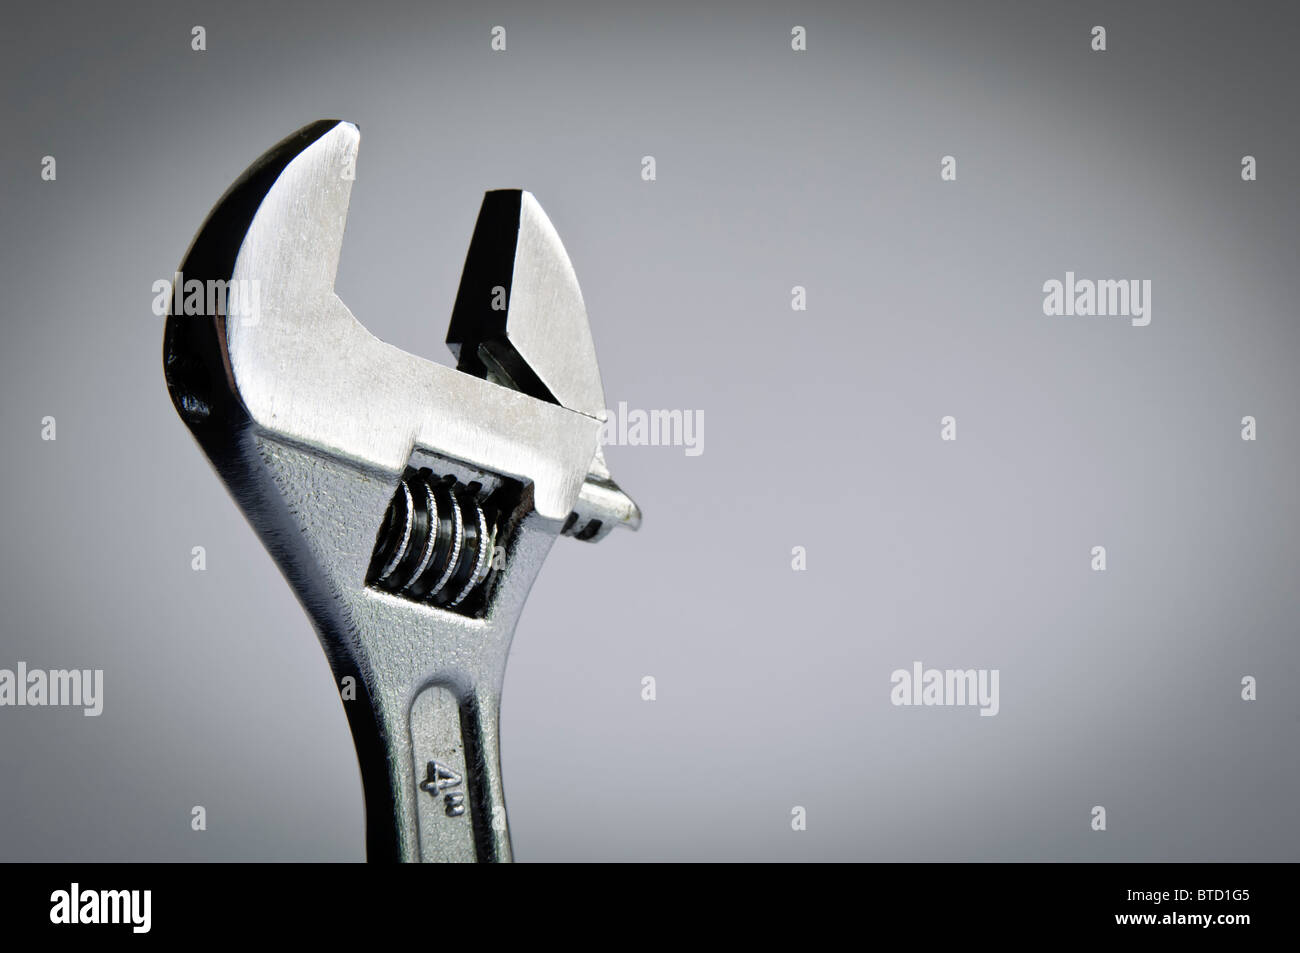 Spanner / wrench head against a grey background with copy space - Stock Image